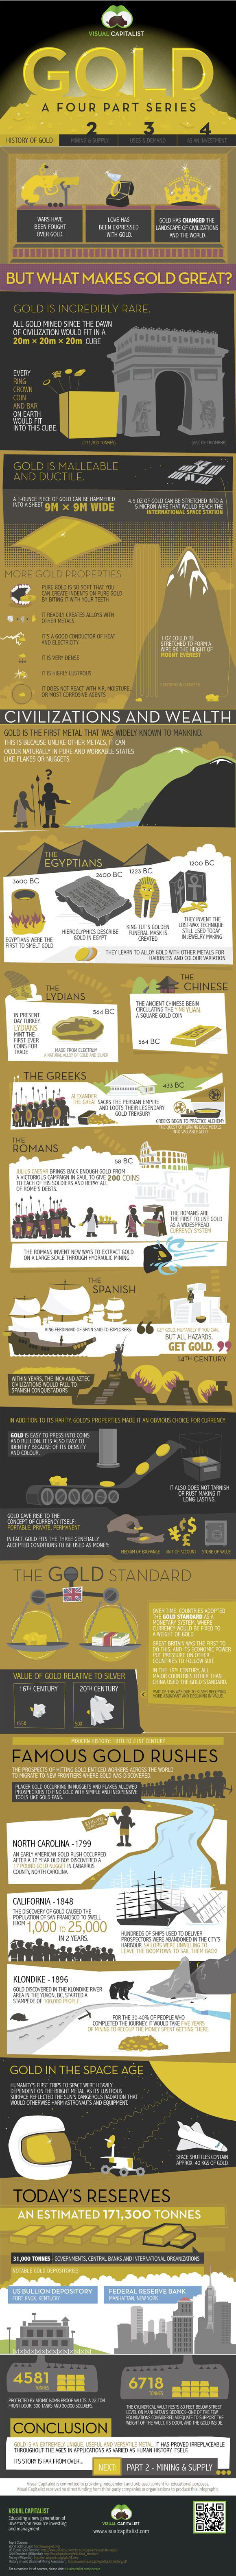 The 4 part history of gold - how this one metal has piqued the interest of every civilization since the Egyptians at least!